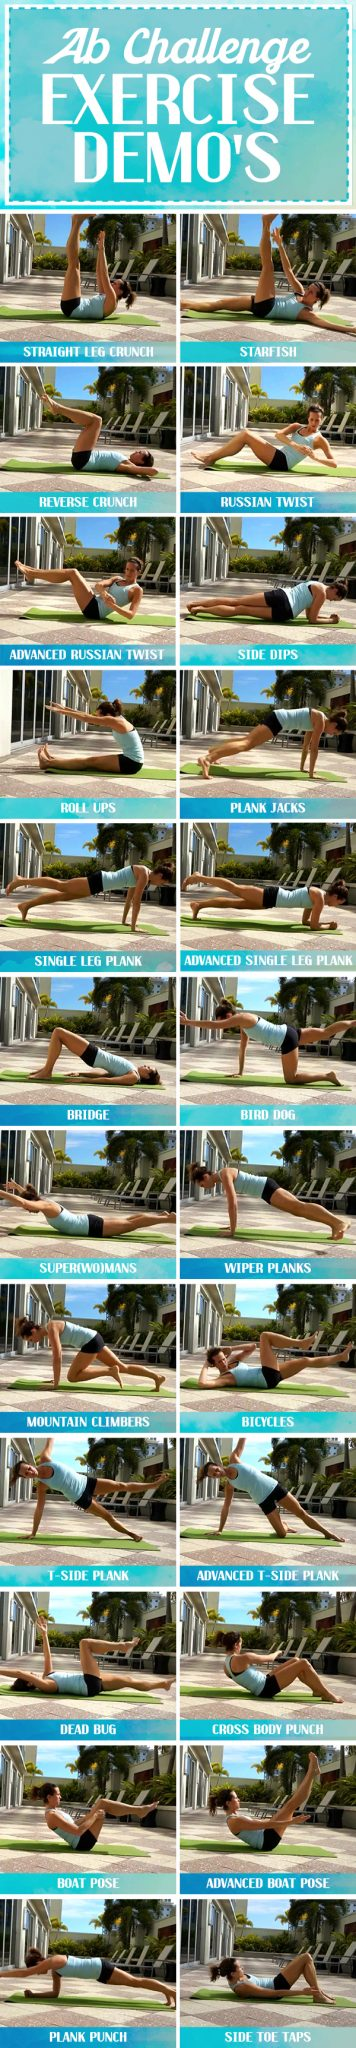 30 day ab challenge exercises demonstrated - click for mote details on nutrition tips and more!